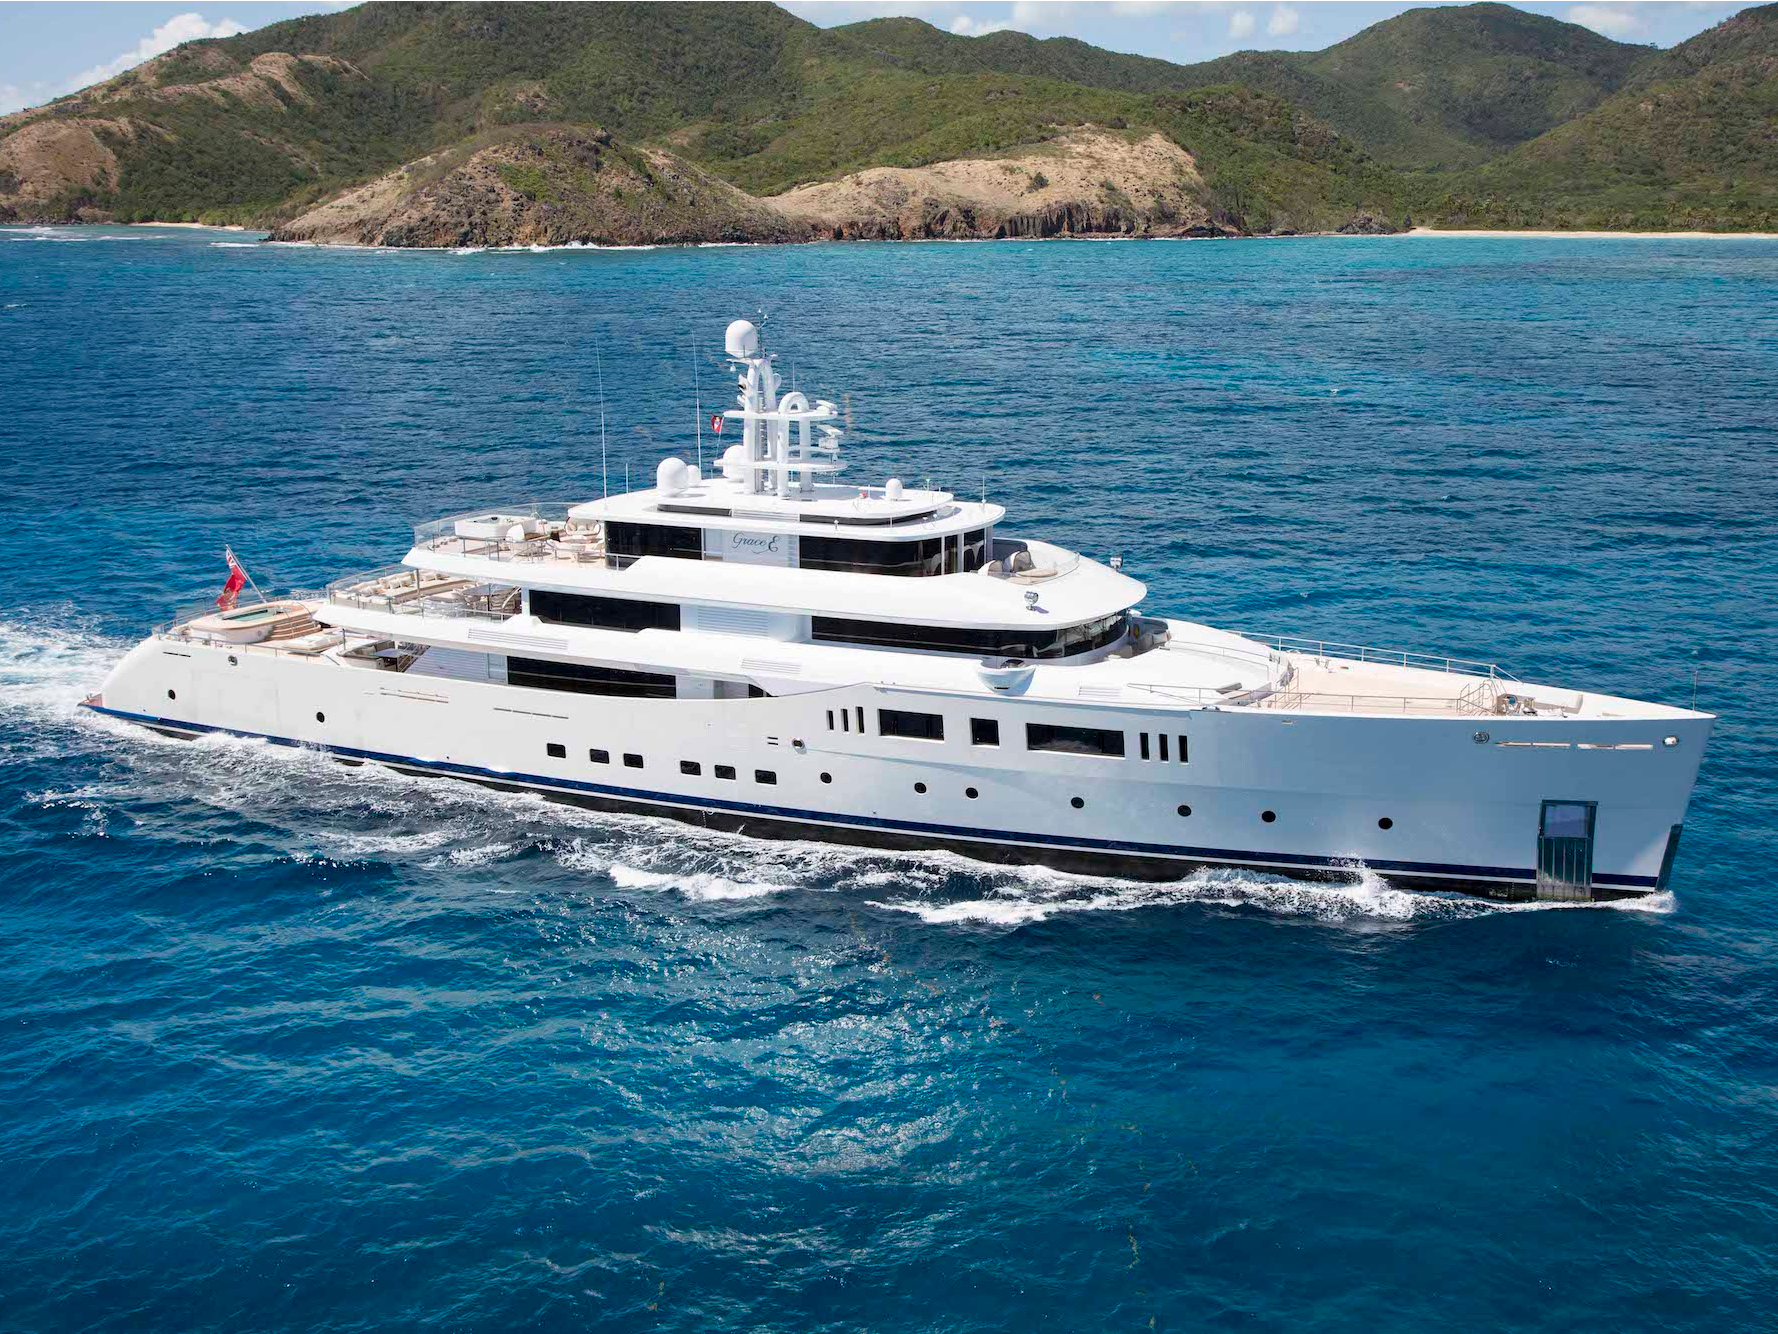 take-a-rare-look-inside-the-luxurious-92-million-superyacht-that-has-a-sushi-bar-a-salon-jacuzzi-and